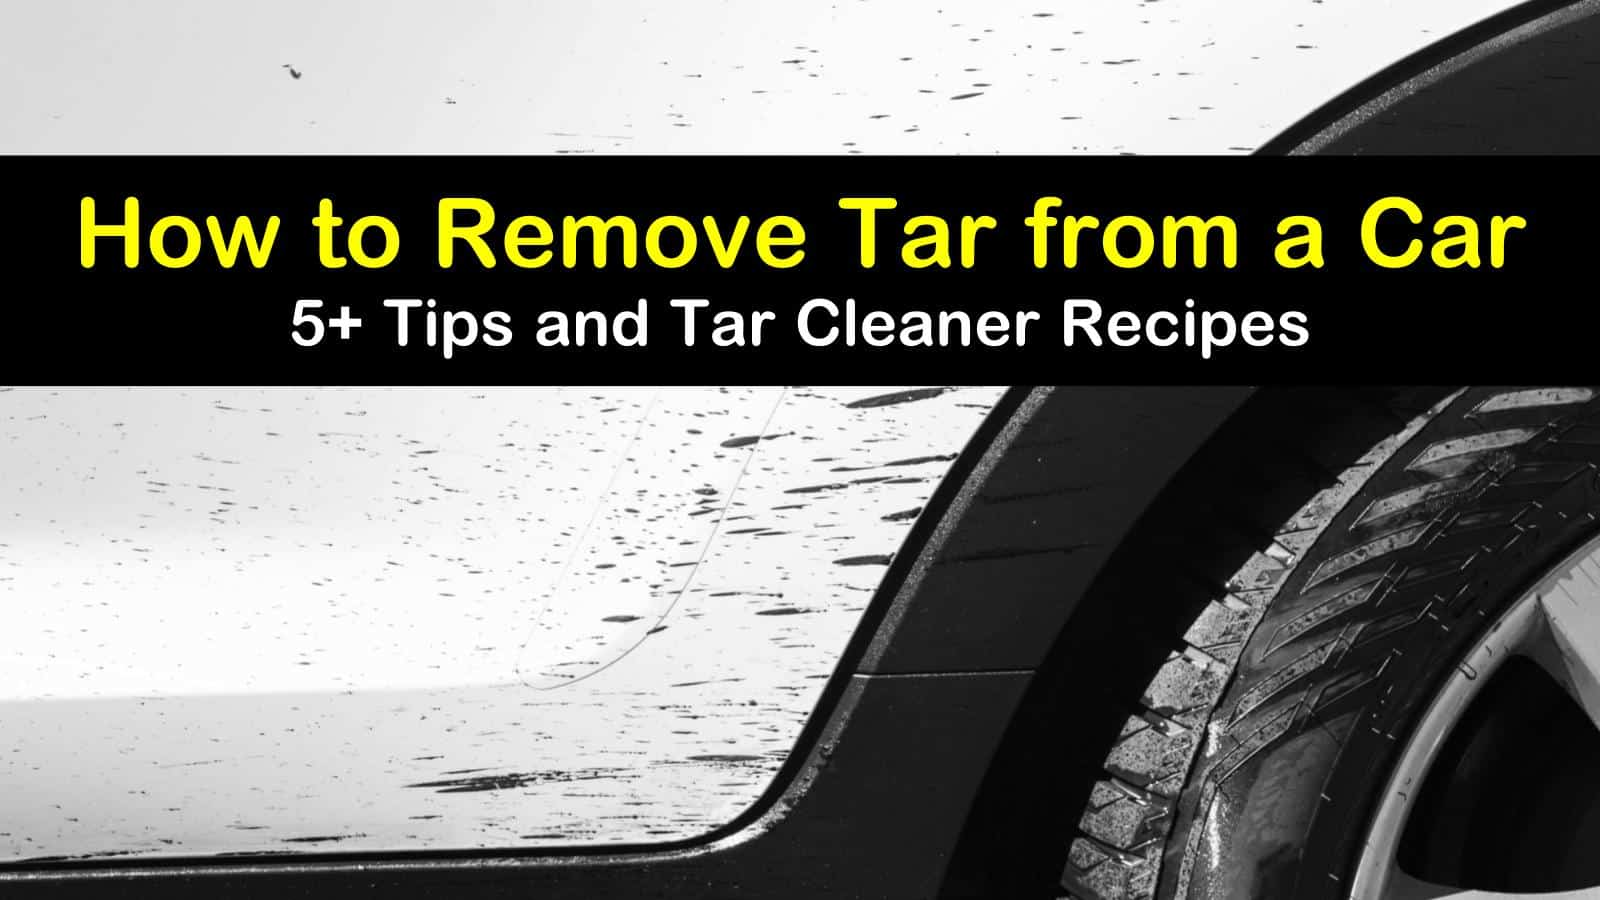 5 Easy Ways To Remove Tar From A Car